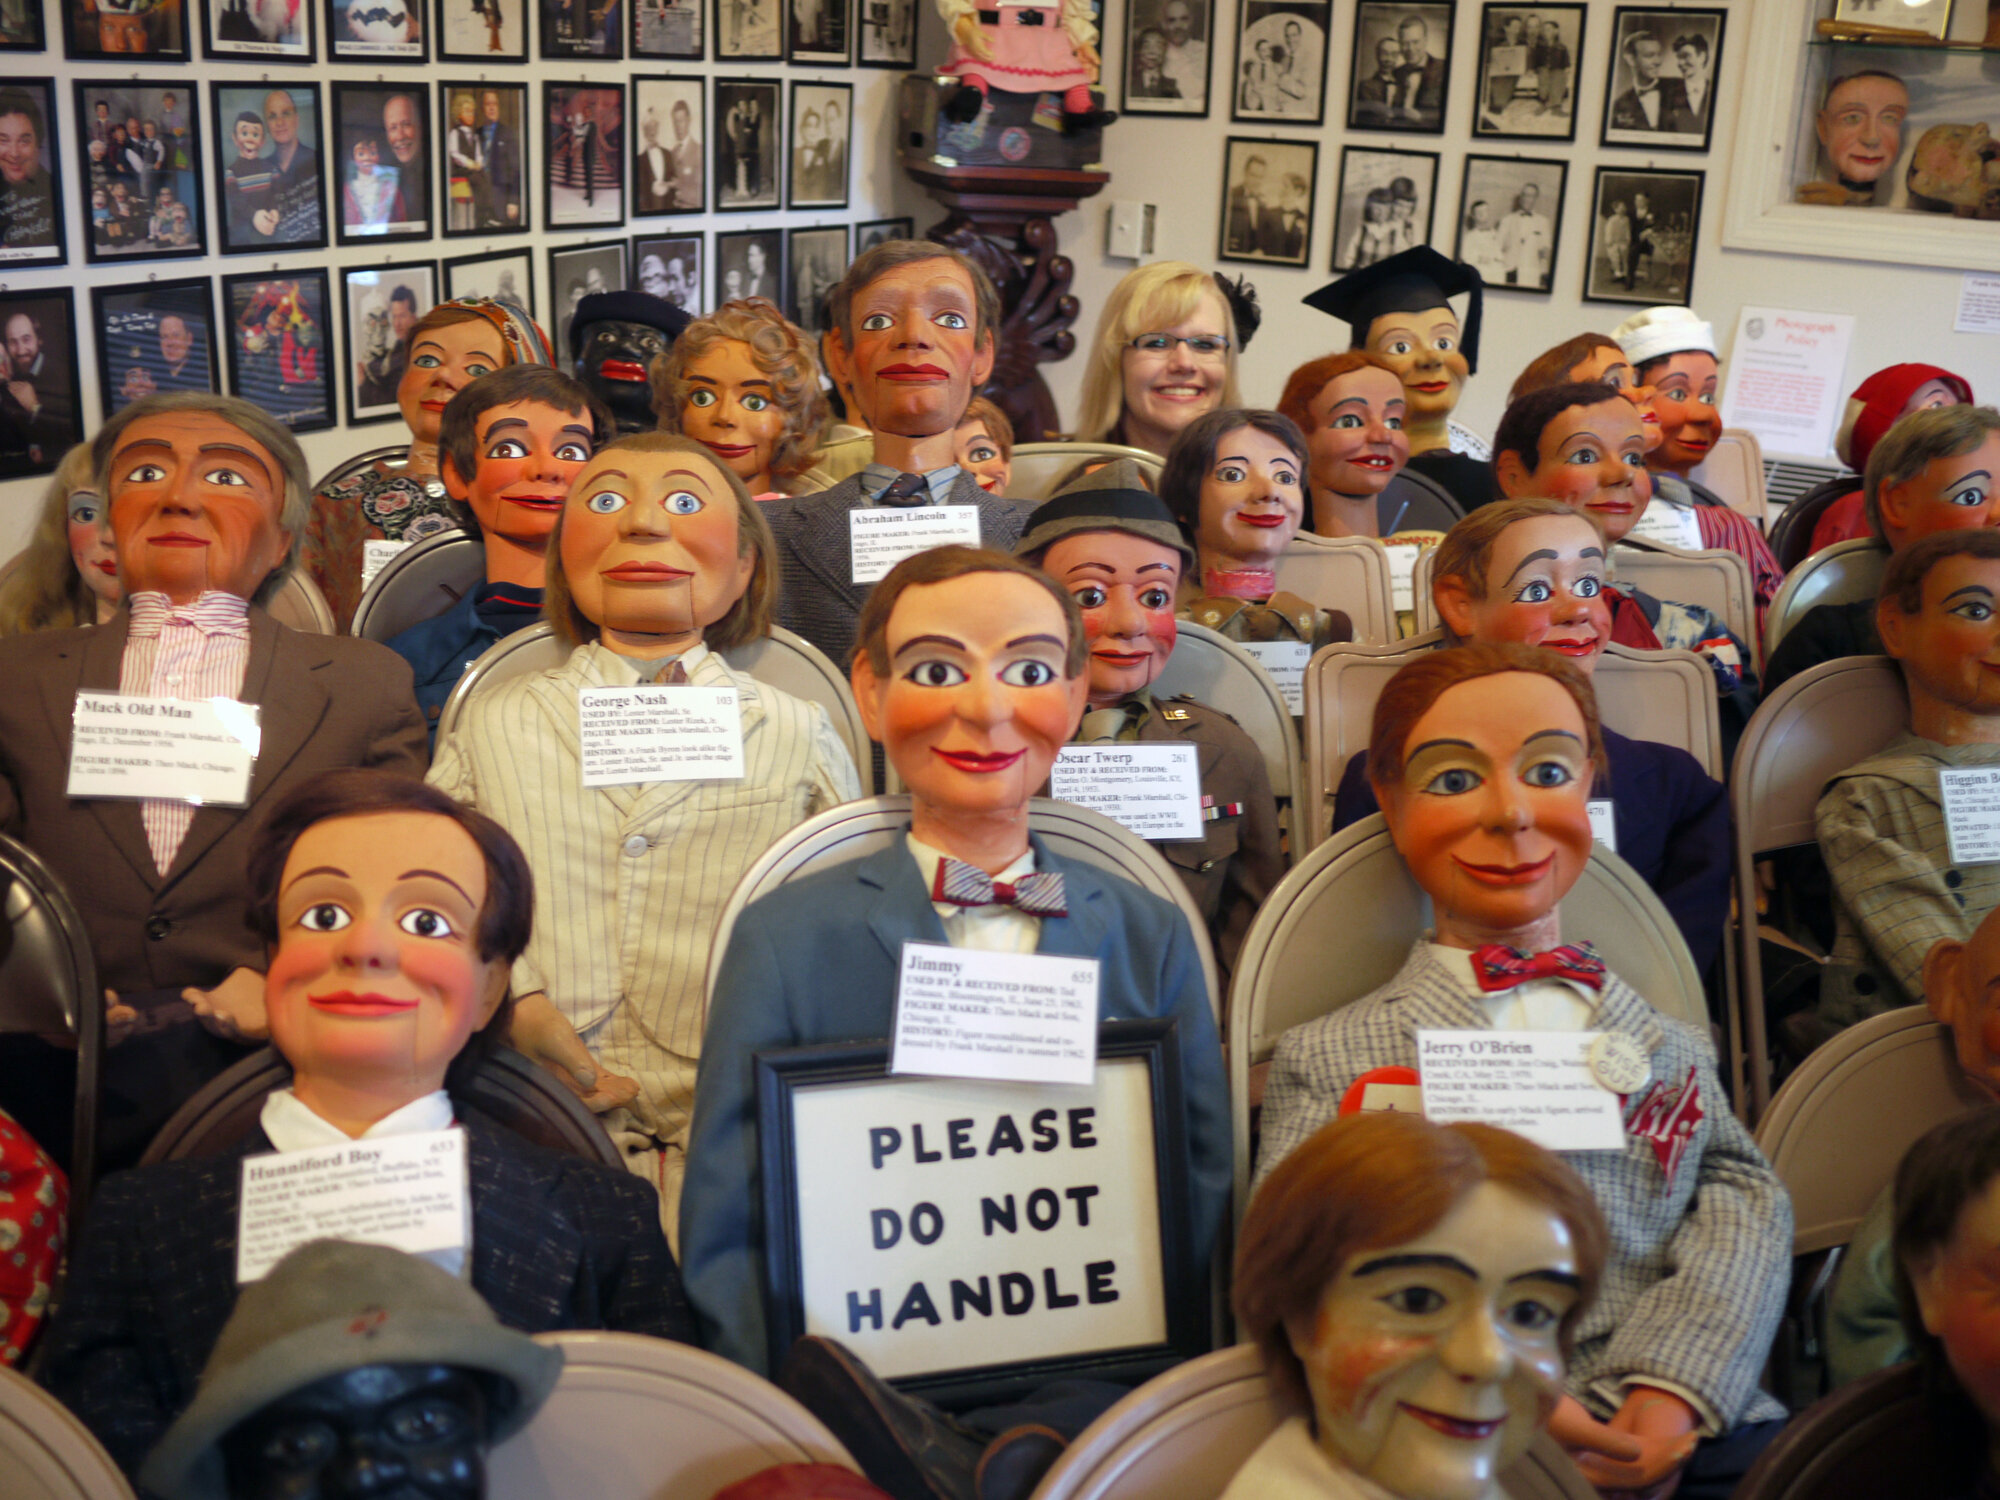 Visit Vent Haven, the World's only Ventriloquist Museum